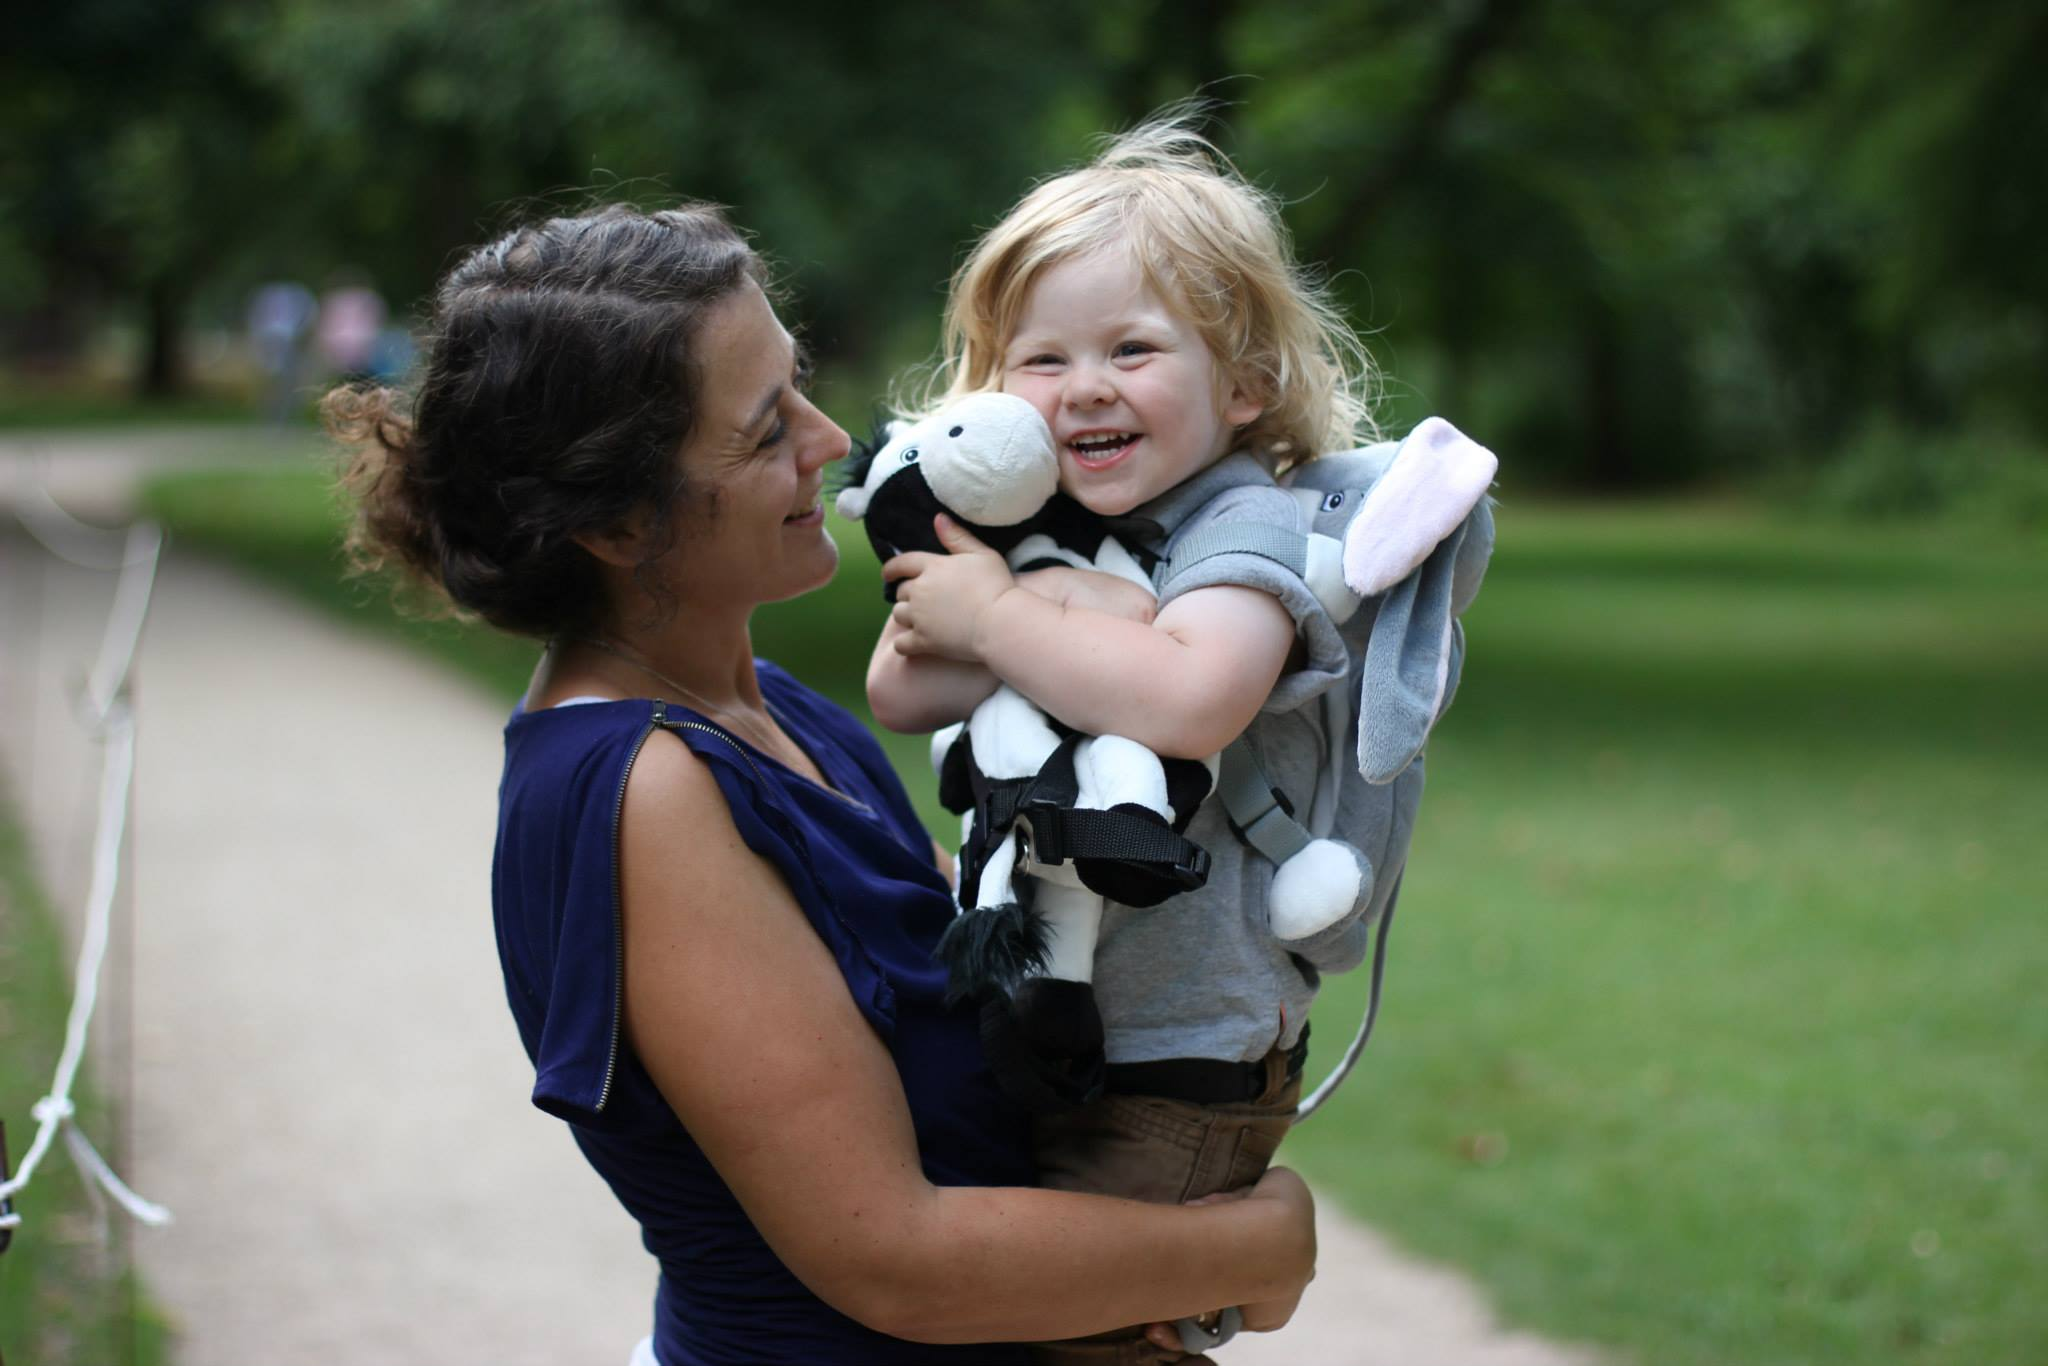 Mother+holding+kids+with+toddler+backpack.jpg